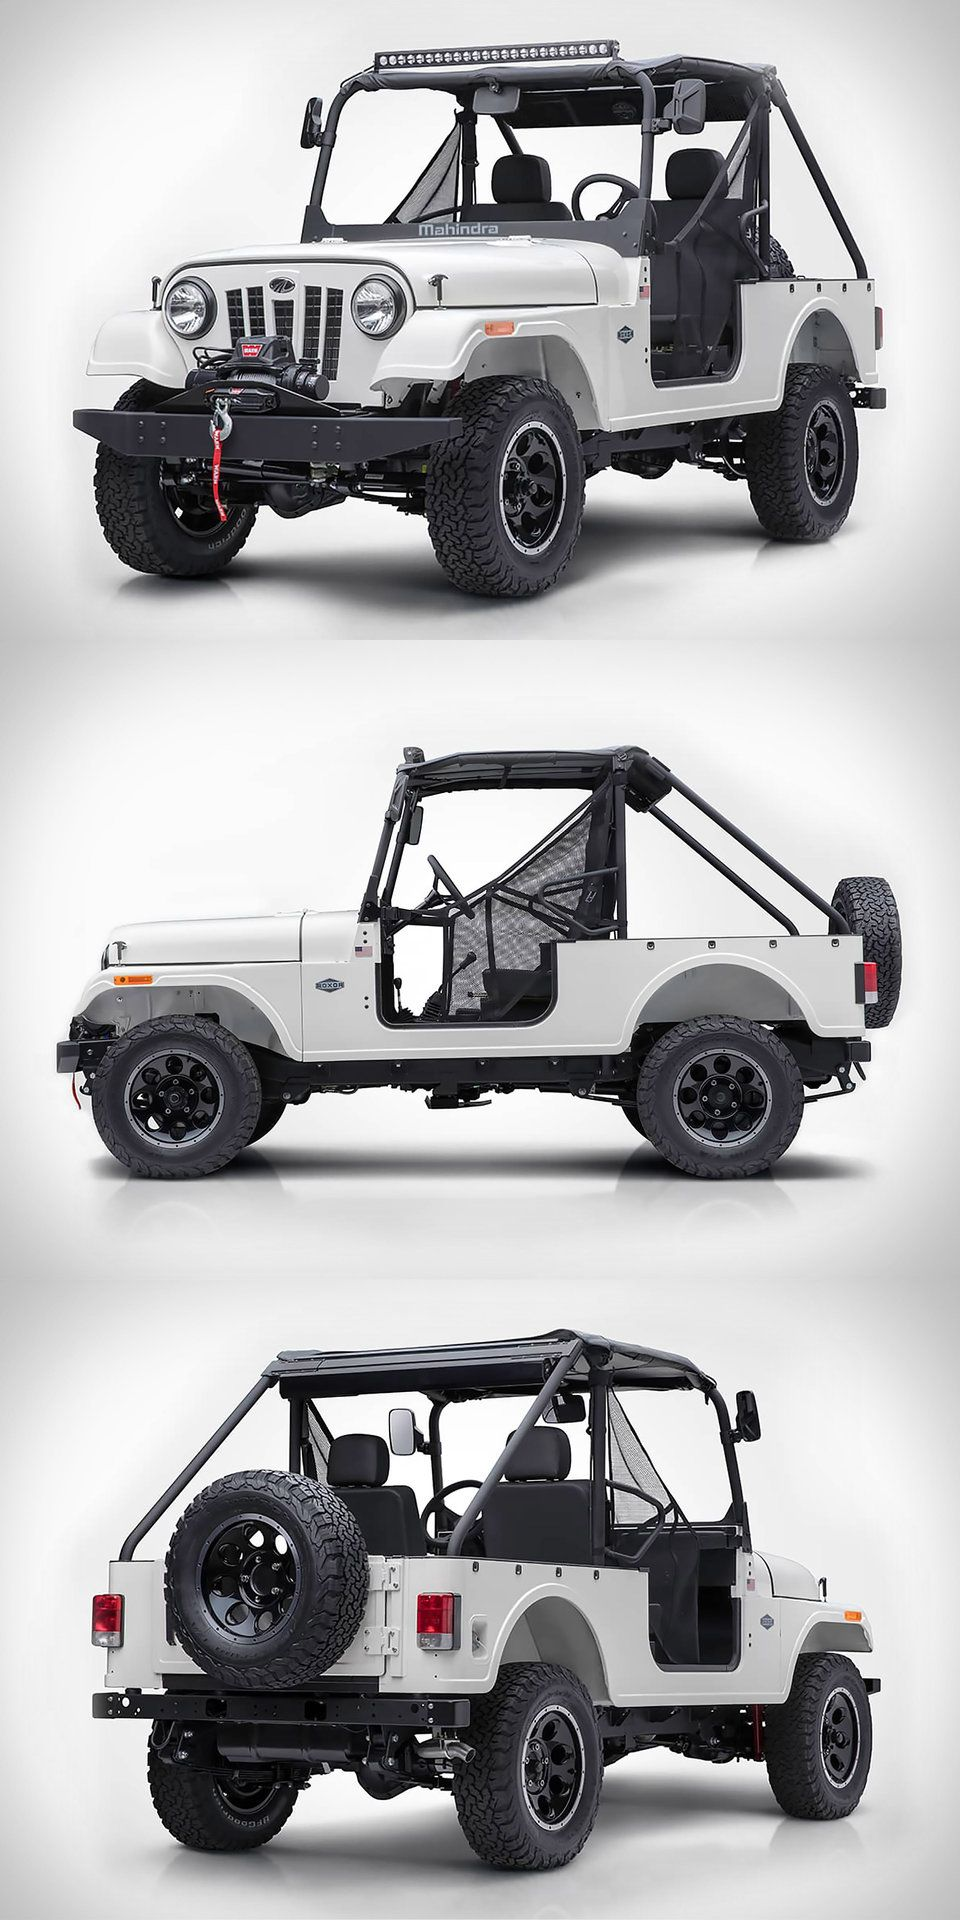 Roxor Off Road Vehicle Offroad Vehicles Mahindra Jeep Vehicles